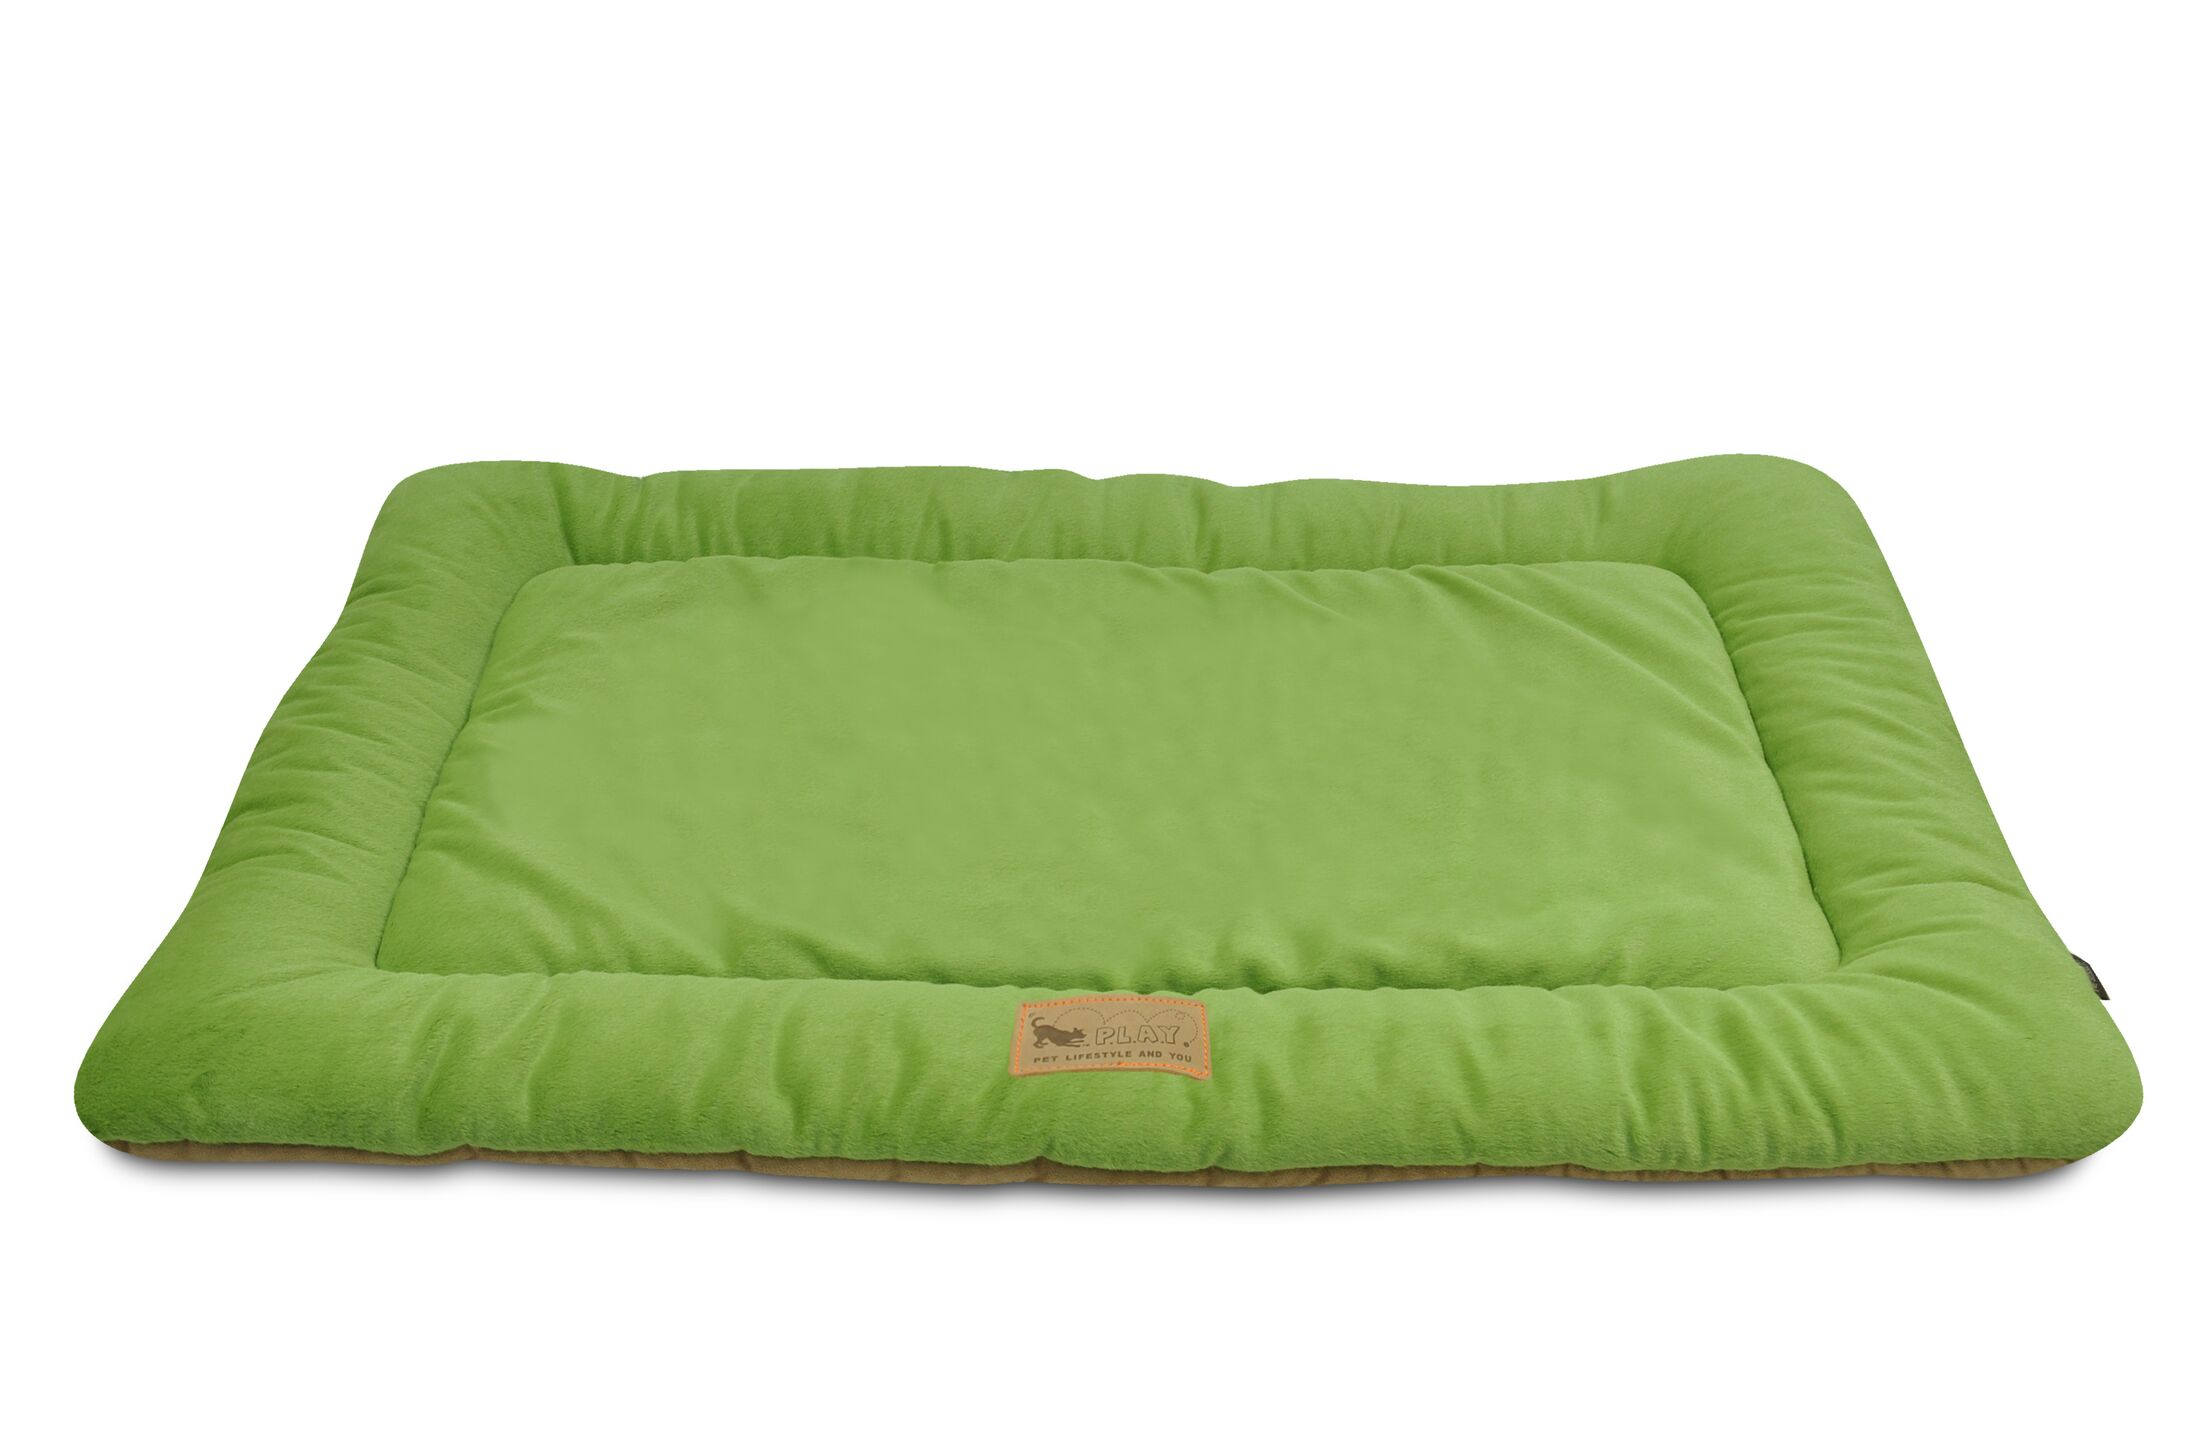 Chill Dog Pad Color: Pistachio / Hazelnut, Size: X-Small (20